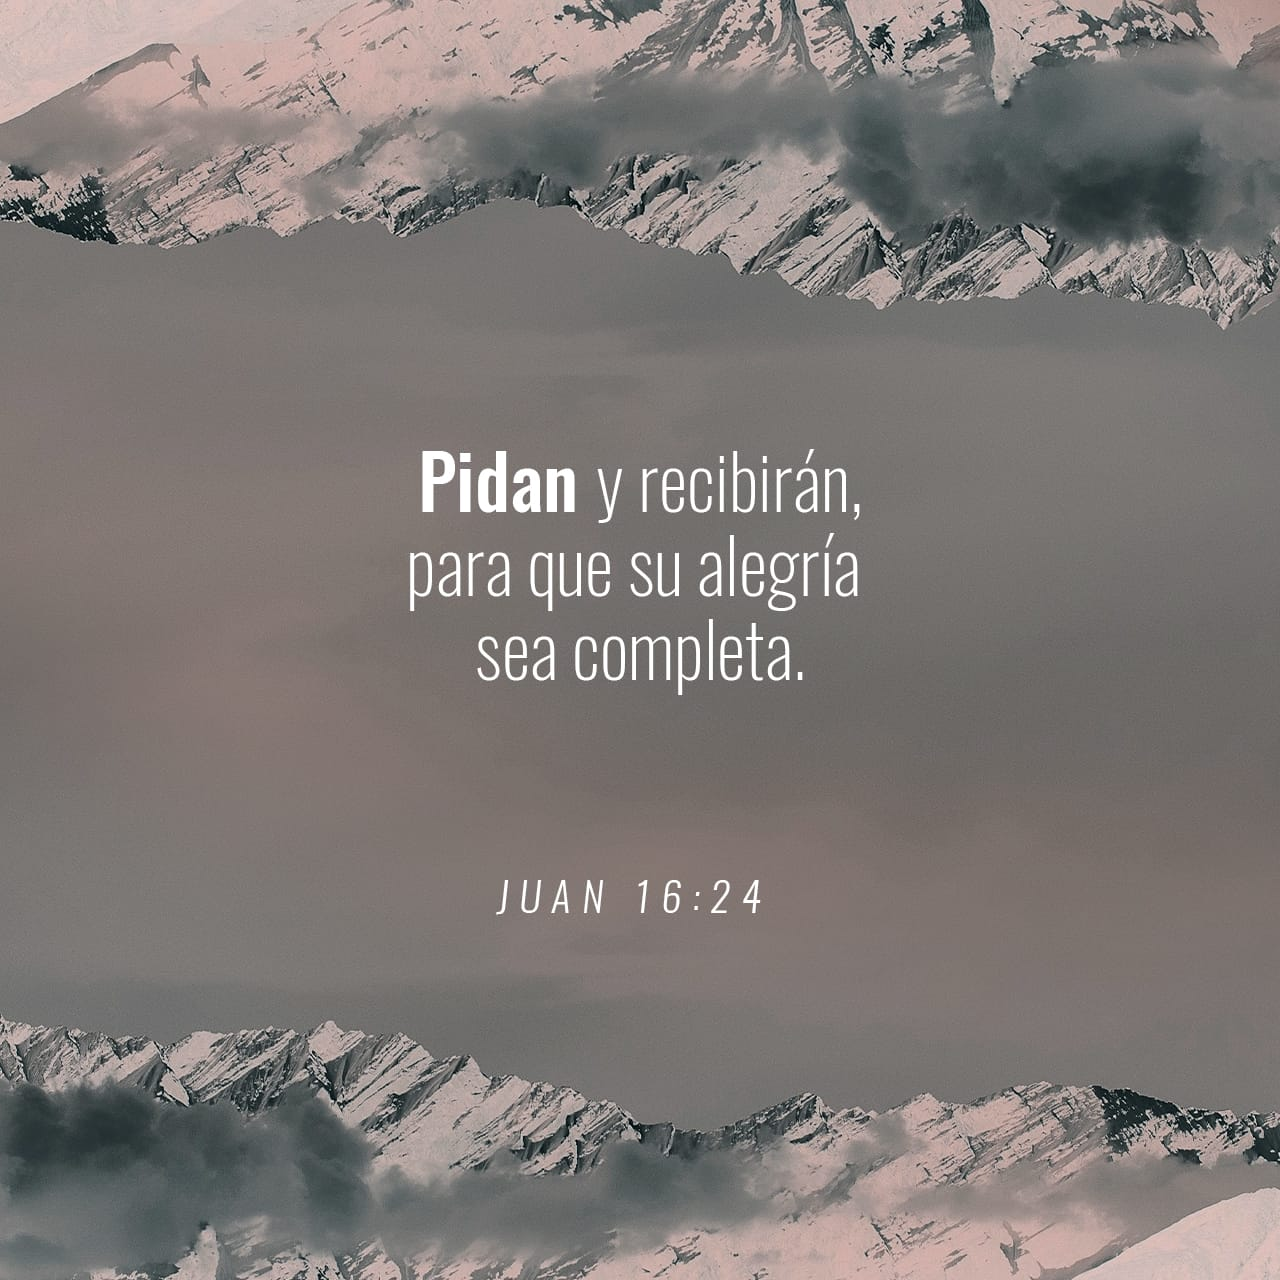 John 16:24 Hitherto have ye asked nothing in my name: ask, and ye shall receive, that your joy may be full. | King James Version (KJV) | Descargar la Biblia App ahora